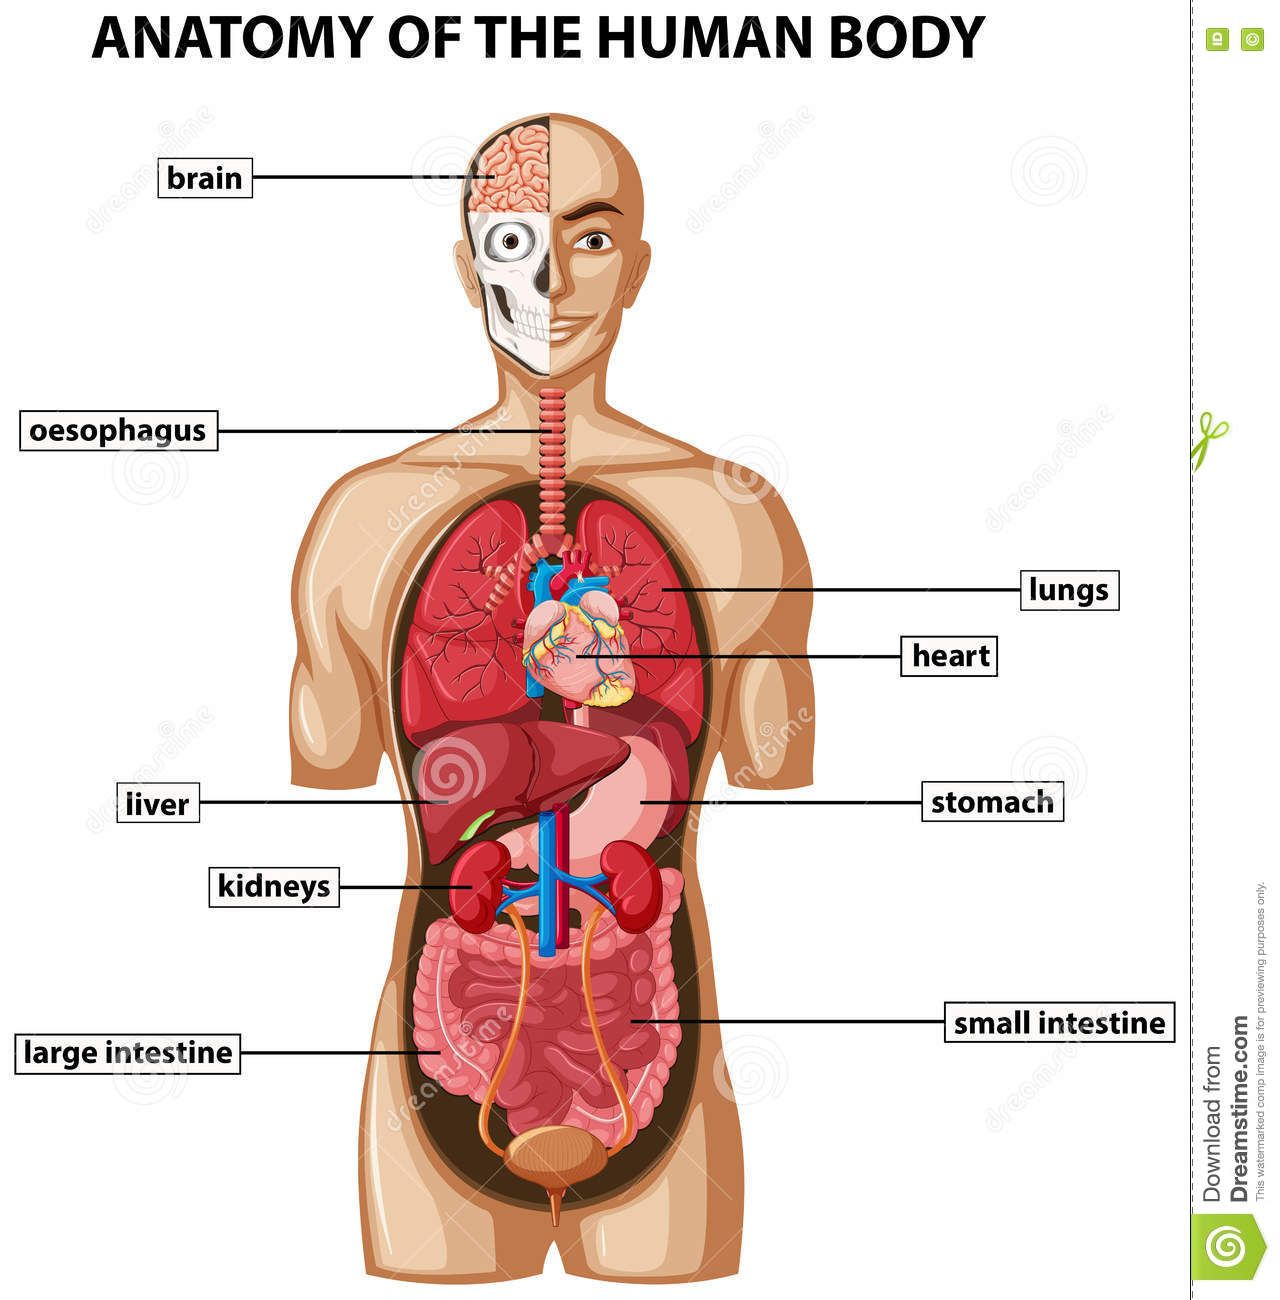 hight resolution of image internal organs human body image internal organs human body photos diagram of the organs